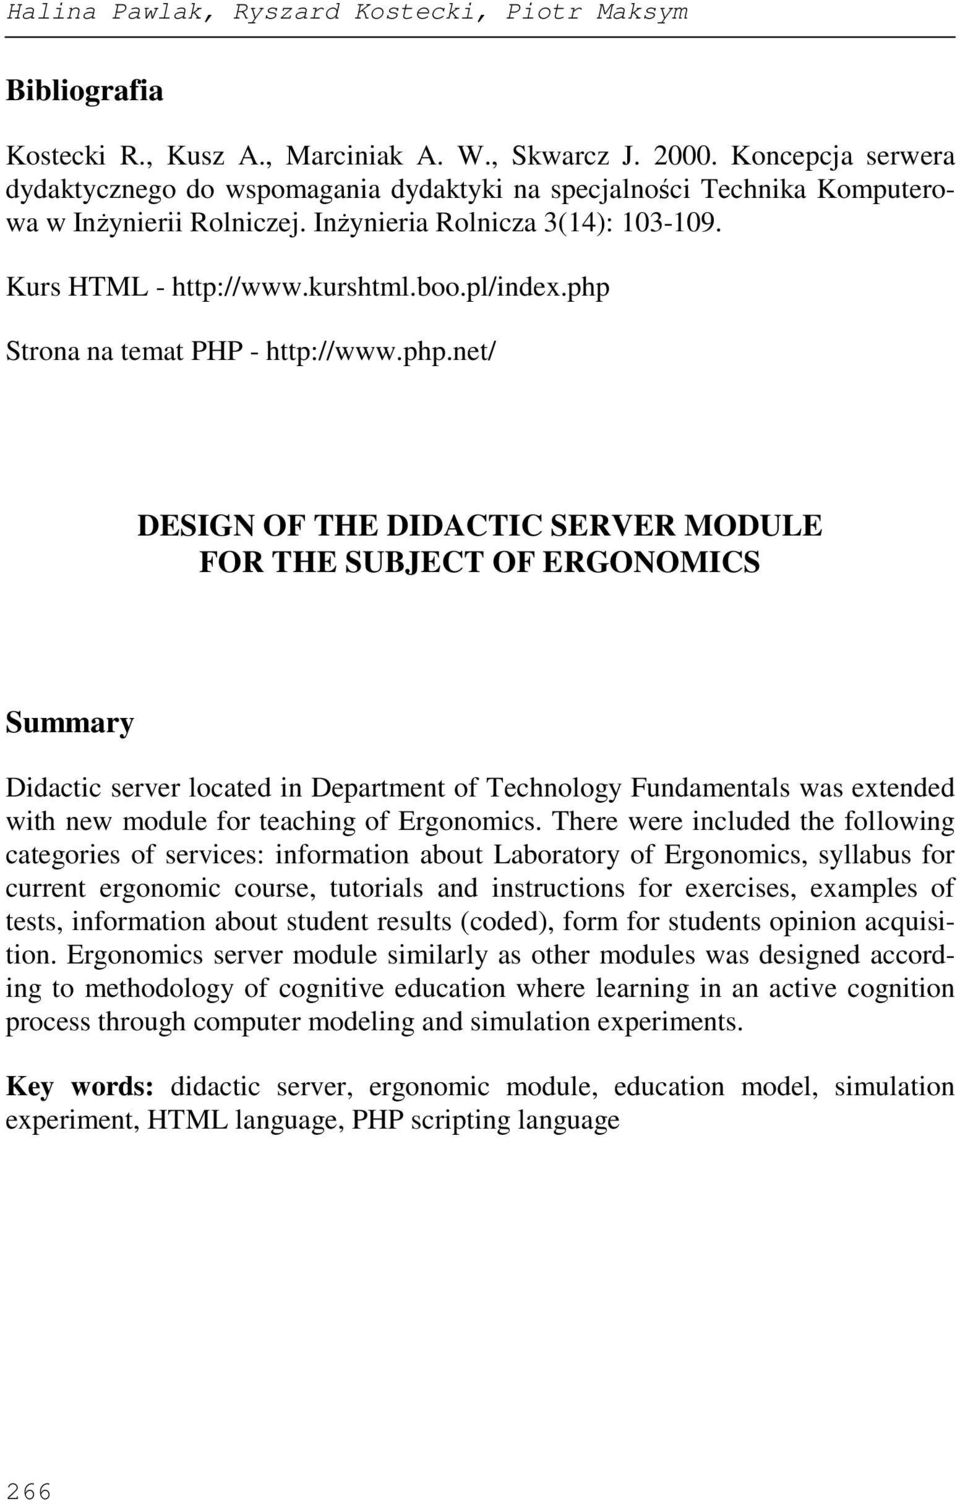 php Strona na temat PHP - http://www.php.net/ DESIGN OF THE DIDACTIC SERVER MODULE FOR THE SUBJECT OF ERGONOMICS Summary Didactic server located in Department of Technology Fundamentals was extended